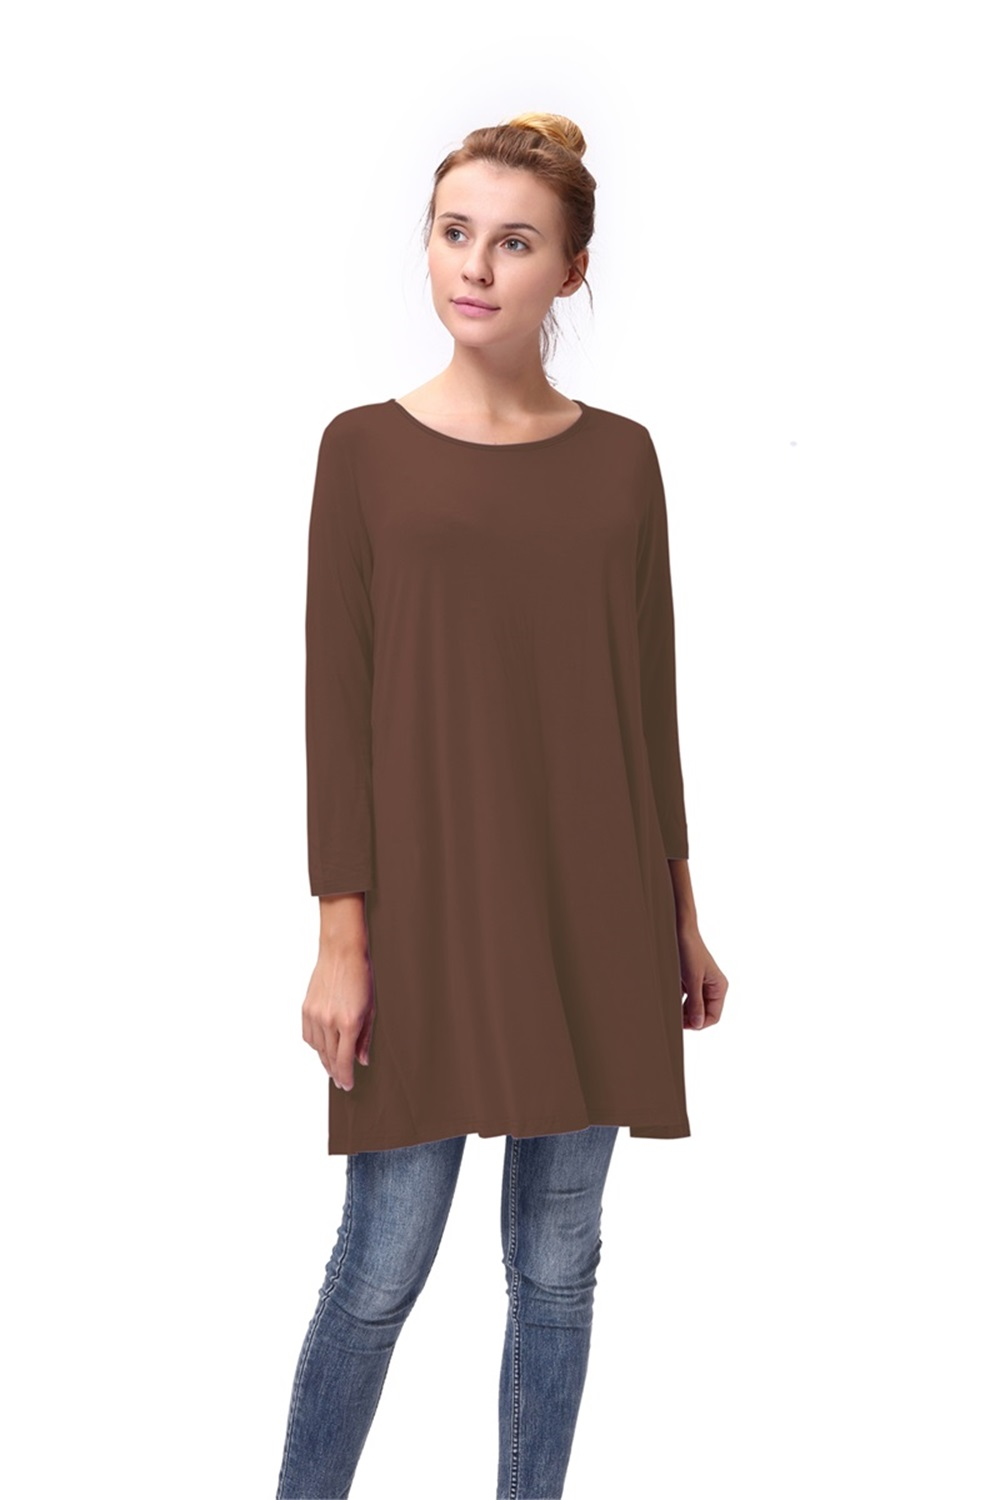 Women-Casual-Round-Neck-3-4-Long-Sleeve-Trapeze-Tunic-Top-Lady-Loose-Fit-Dress thumbnail 19